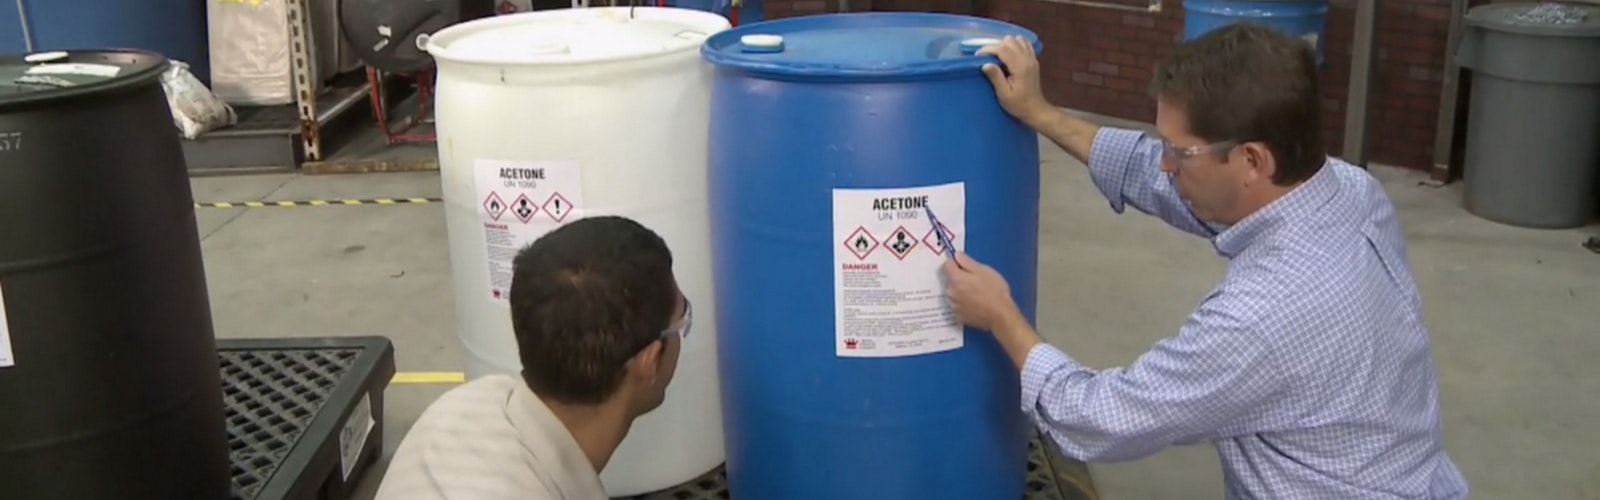 A Quick And Easy Breakdown Of Hazardous Chemical Labels